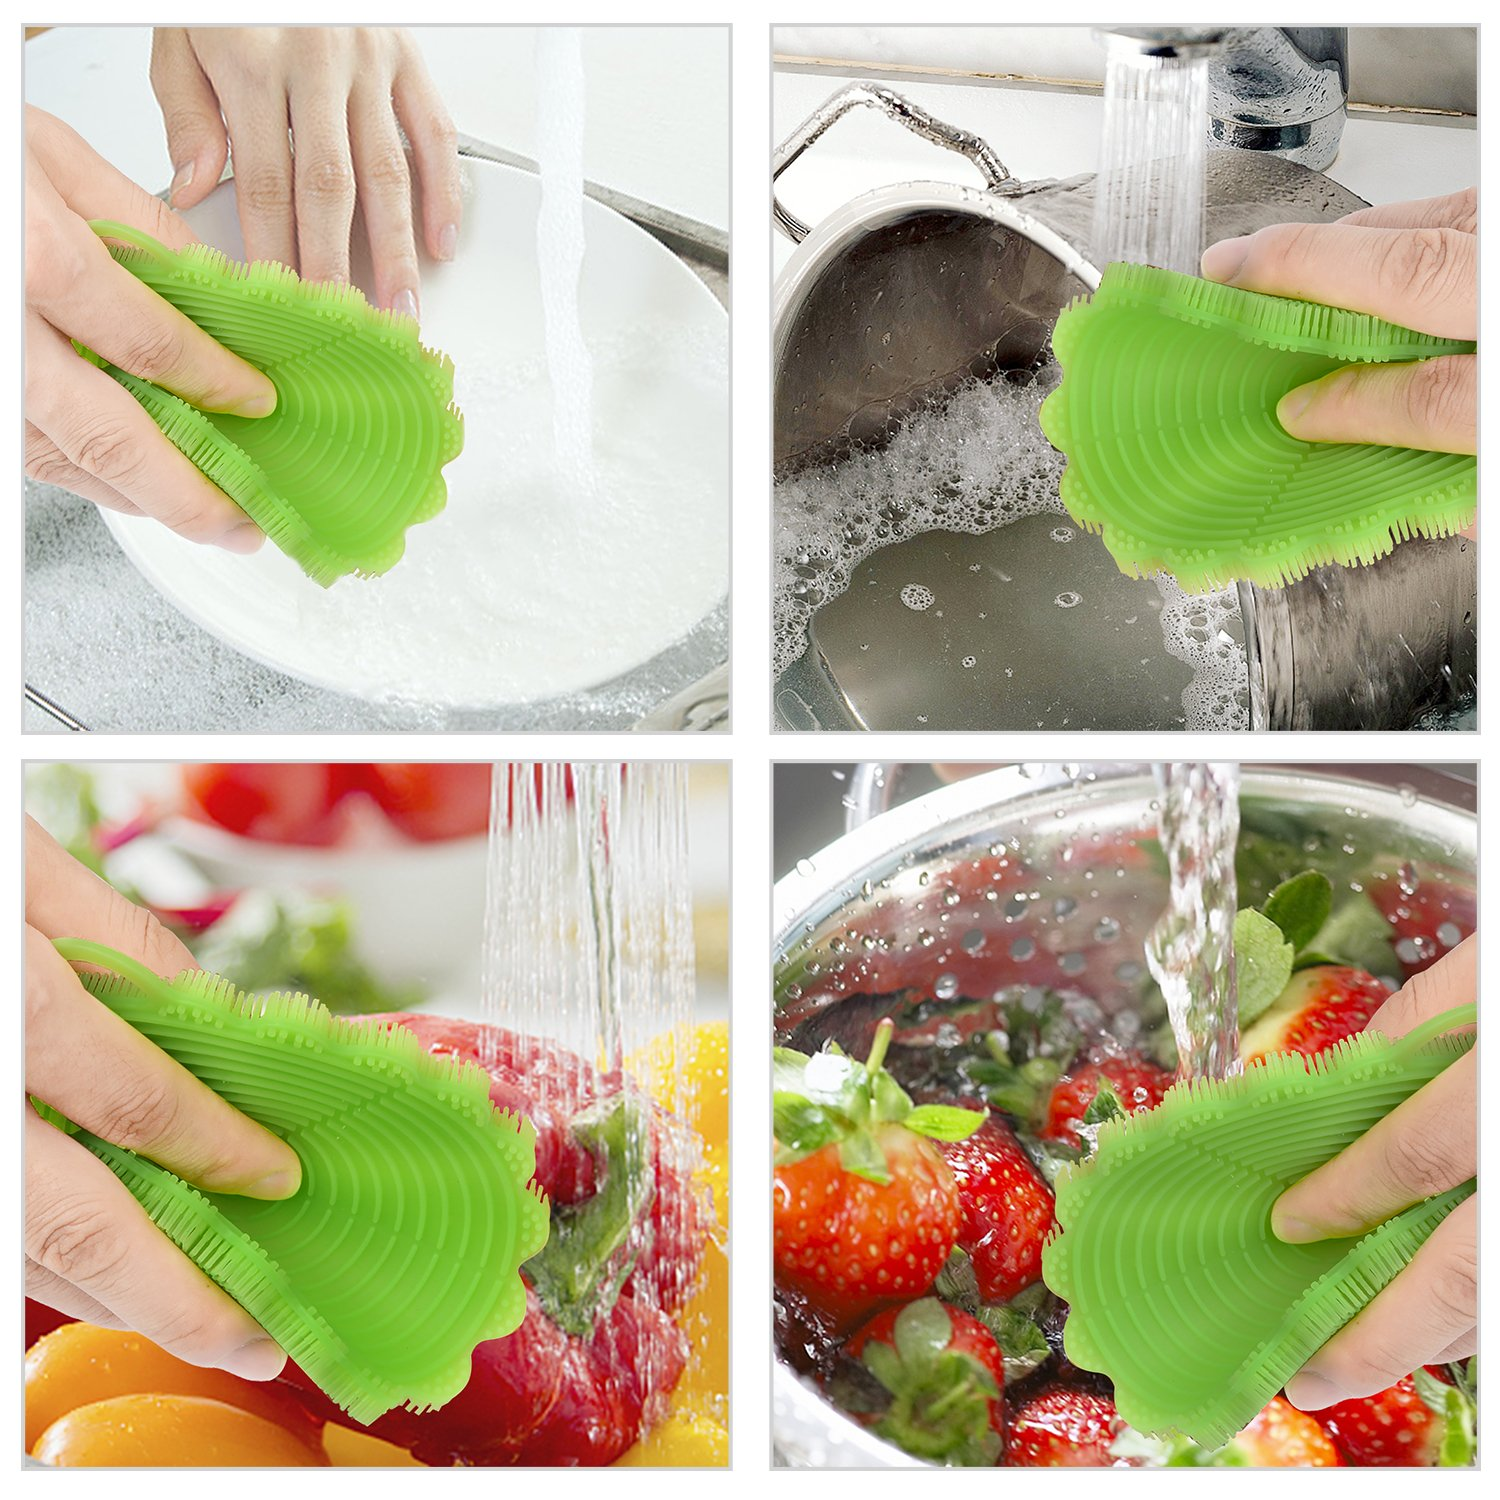 Kitchen Silicone Sponge, Robao 3 Pack Food-grade Antibacterial Dish Scrubber, Heat-resistant Mat, Multipurpose Silicone Dish Washing Brush For Pot, Pan, Fruit and Vegetables, Easy To Clean Non-stick